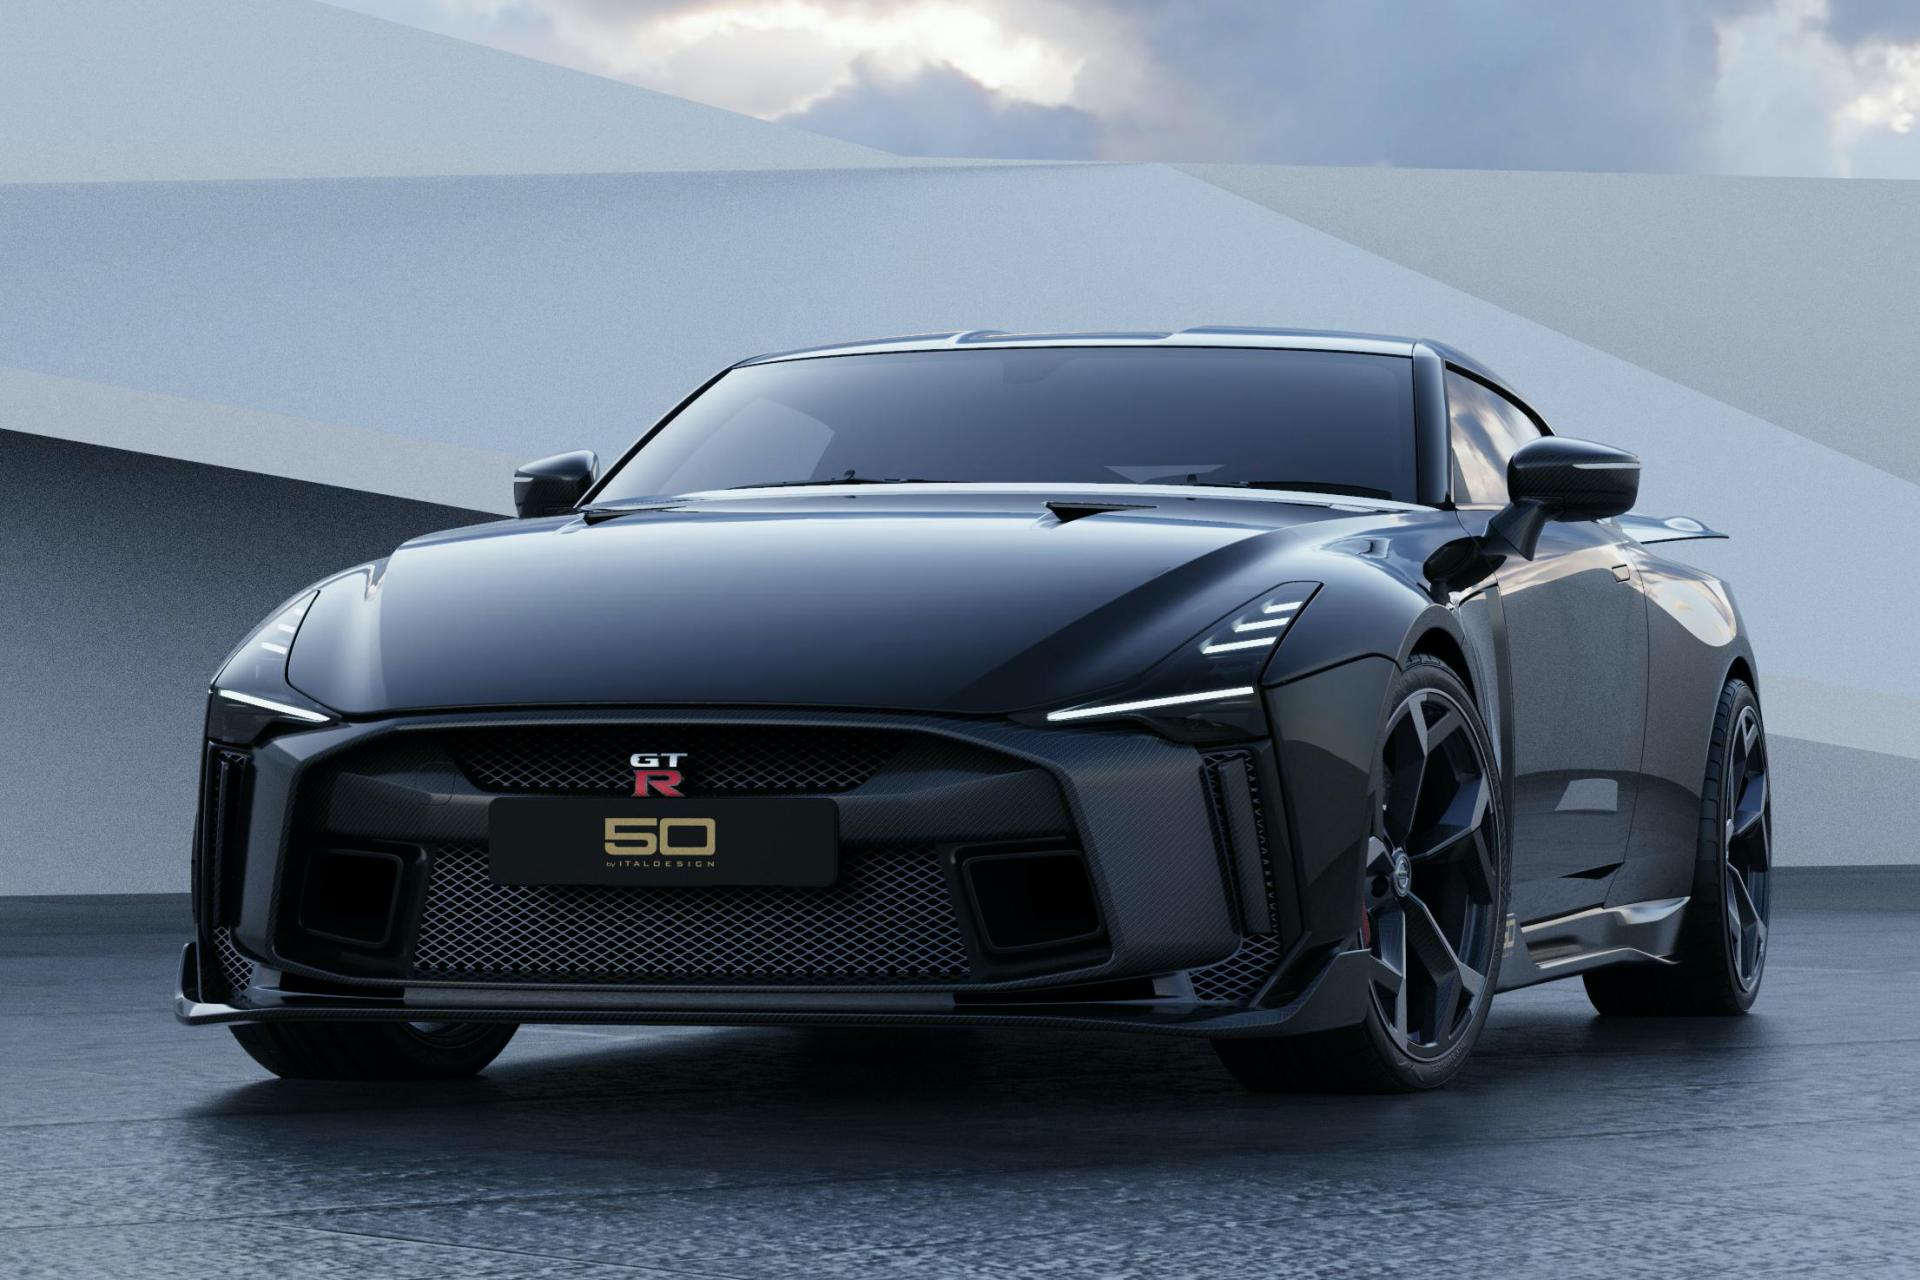 Nissan GT-R50 By Italdesign Limited Edition Unveiled In Production Guise